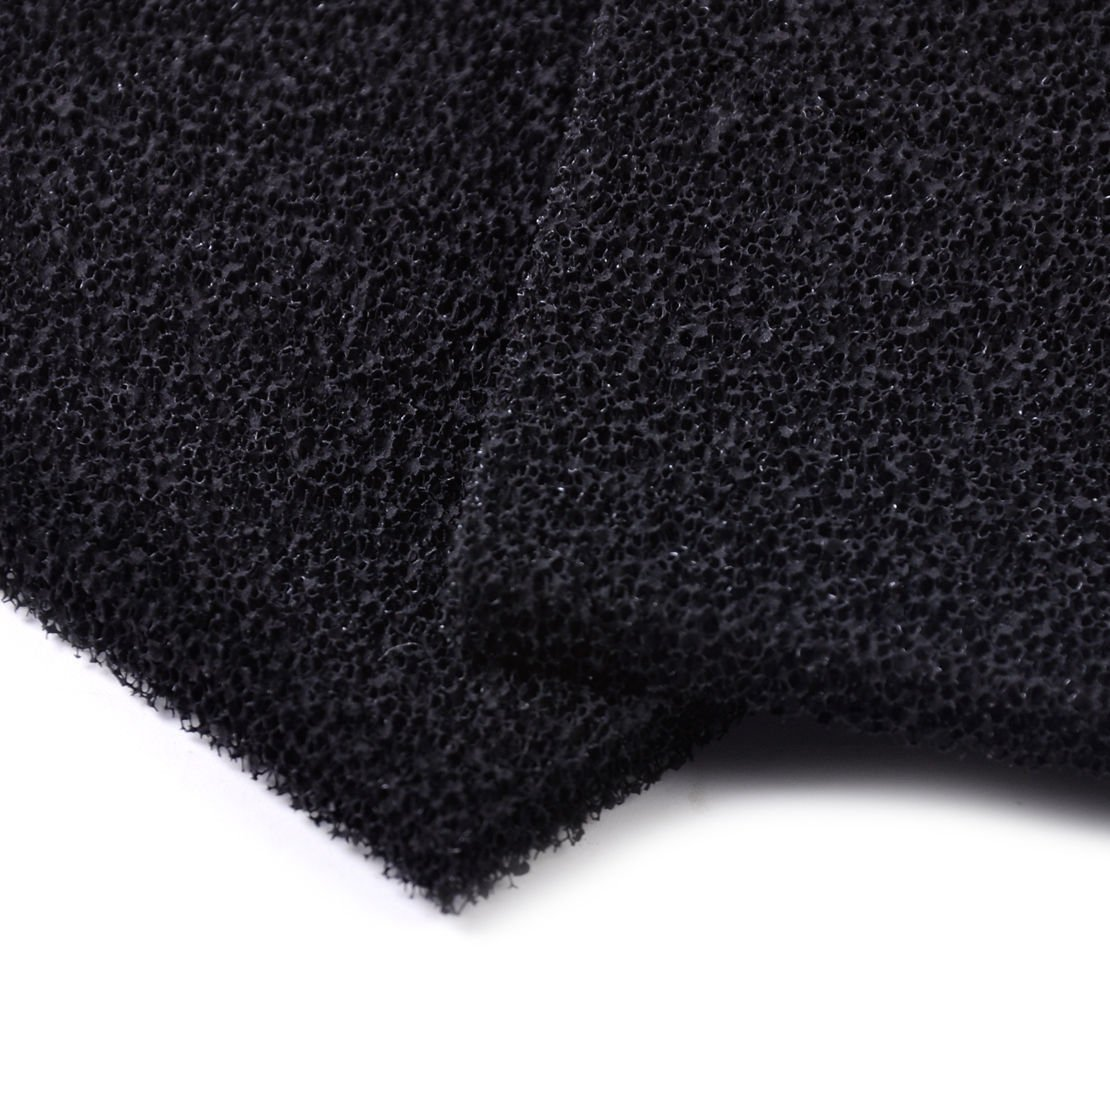 Aquiver Universal Black Activated Carbon Foam Sponge Air Impregnated Sheet Filter Pad,2 pcs